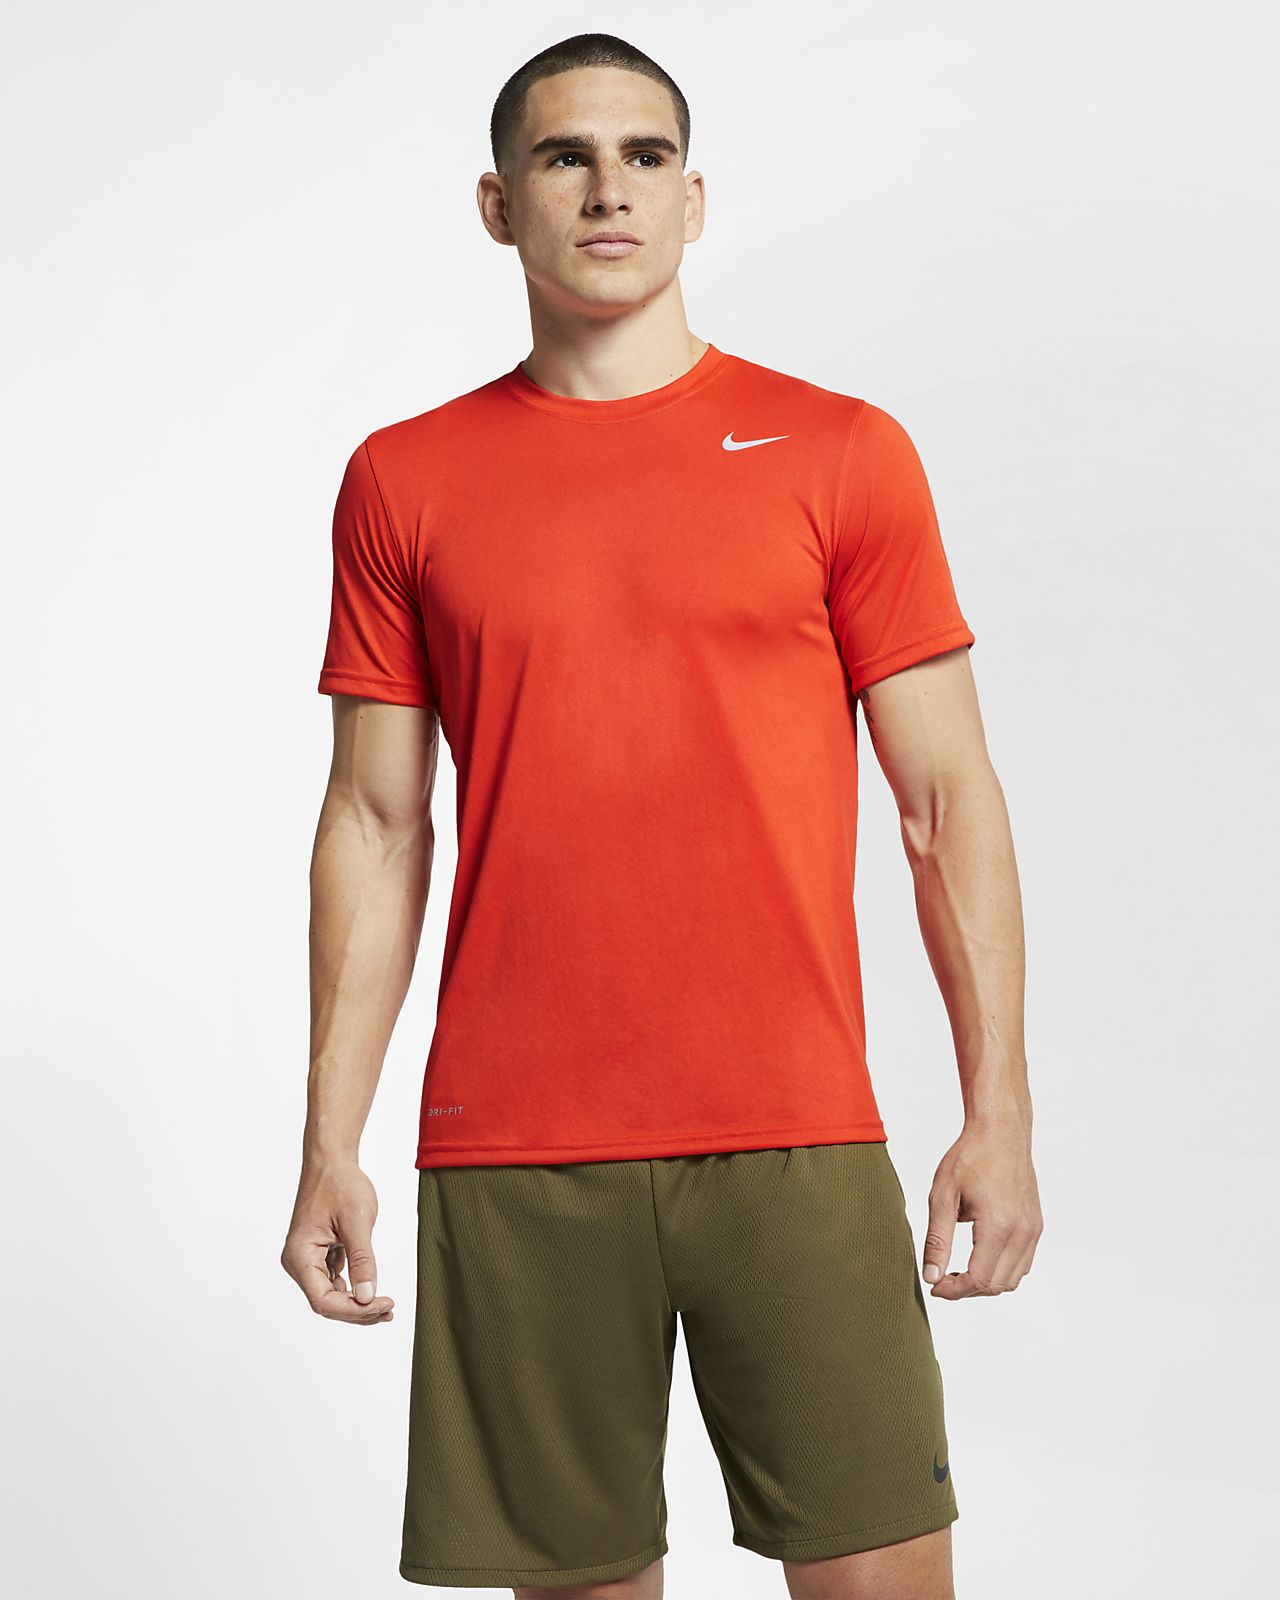 5ec6e25493fe Nike Legend 2.0 Men s Training T-Shirt. Nike.com